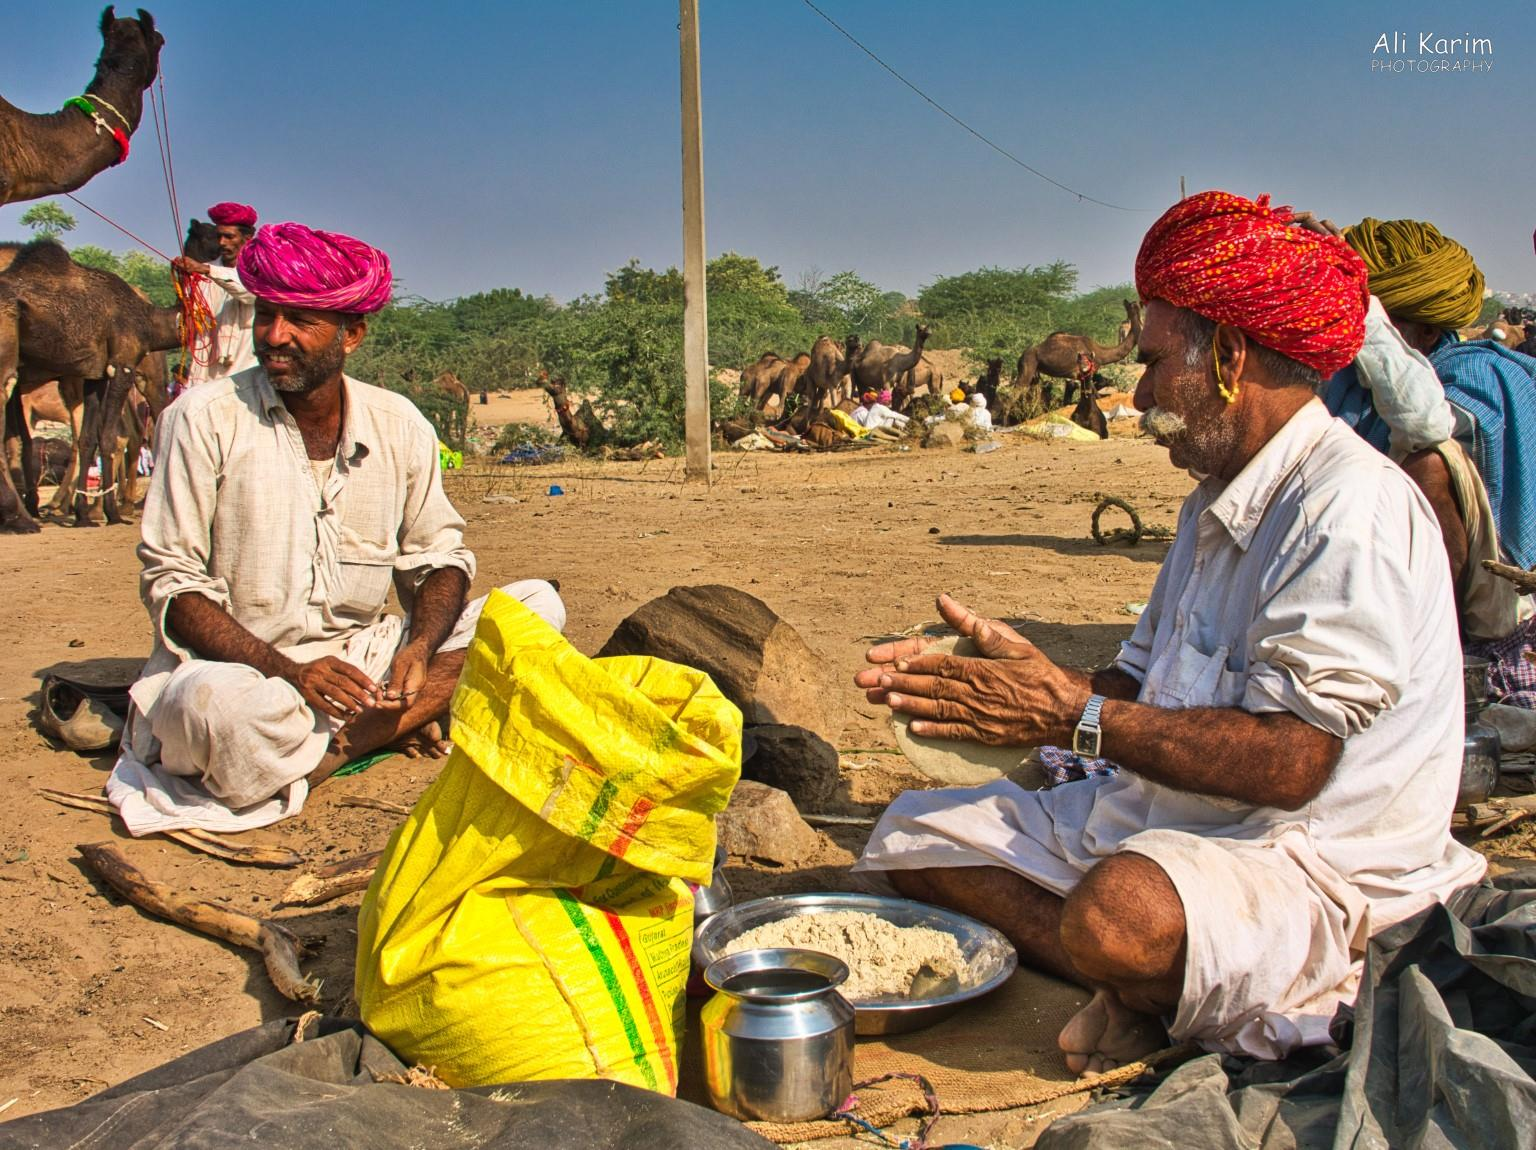 Pushkar, Rajasthan Making baajra roti's on a campfire behind the yellow flour bag